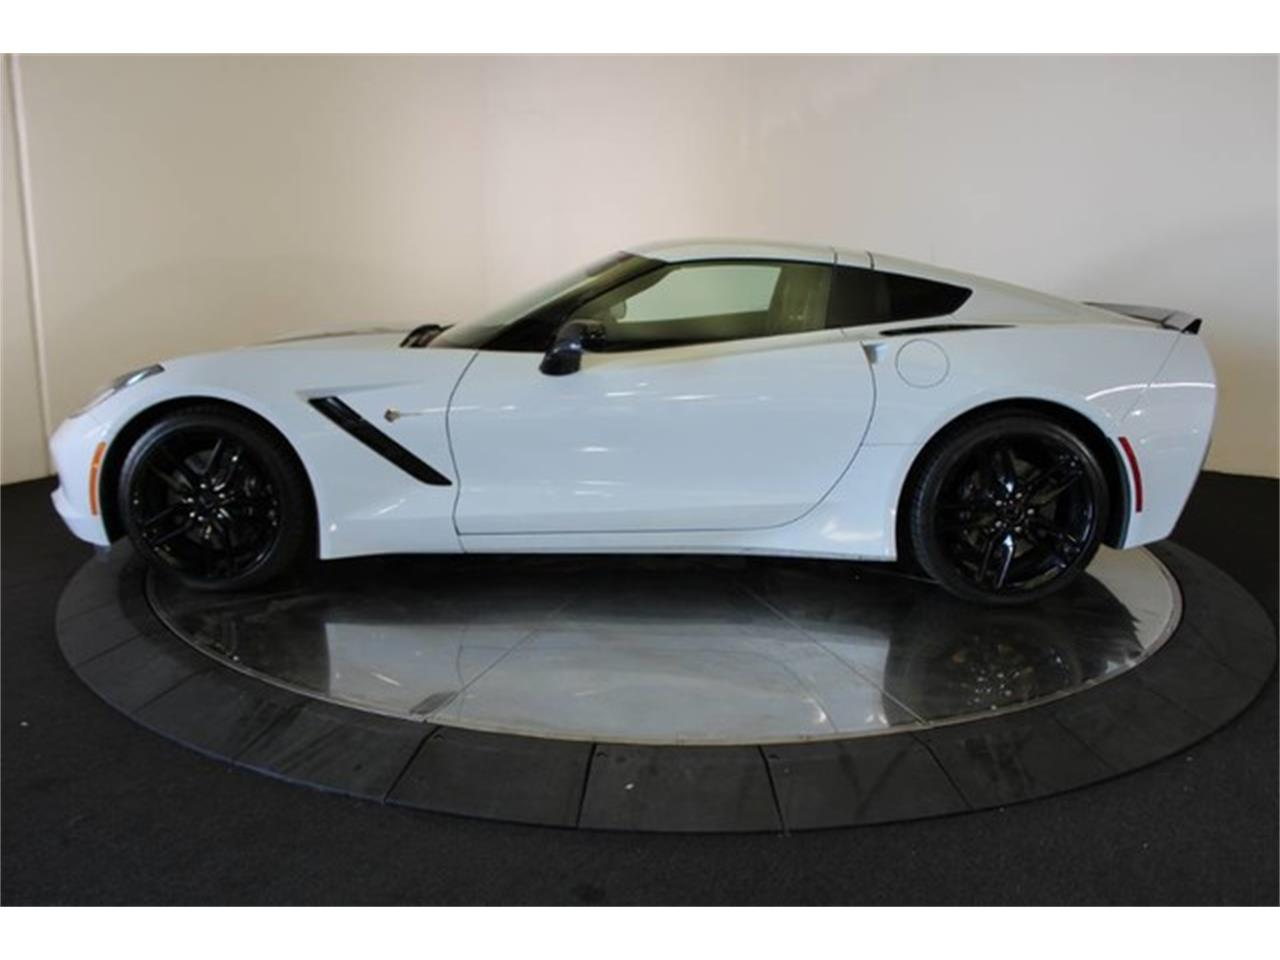 2018 Chevrolet Corvette (CC-1239152) for sale in Anaheim, California